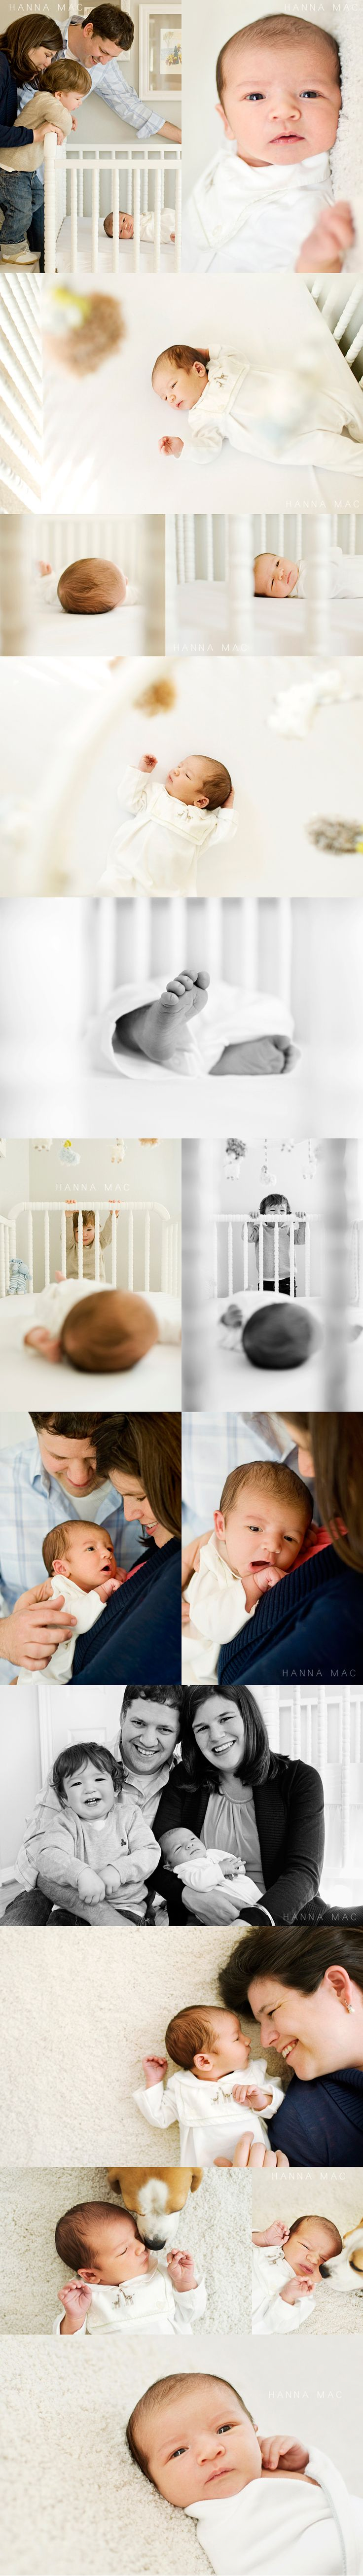 Fun Family Photography Session with Newborn